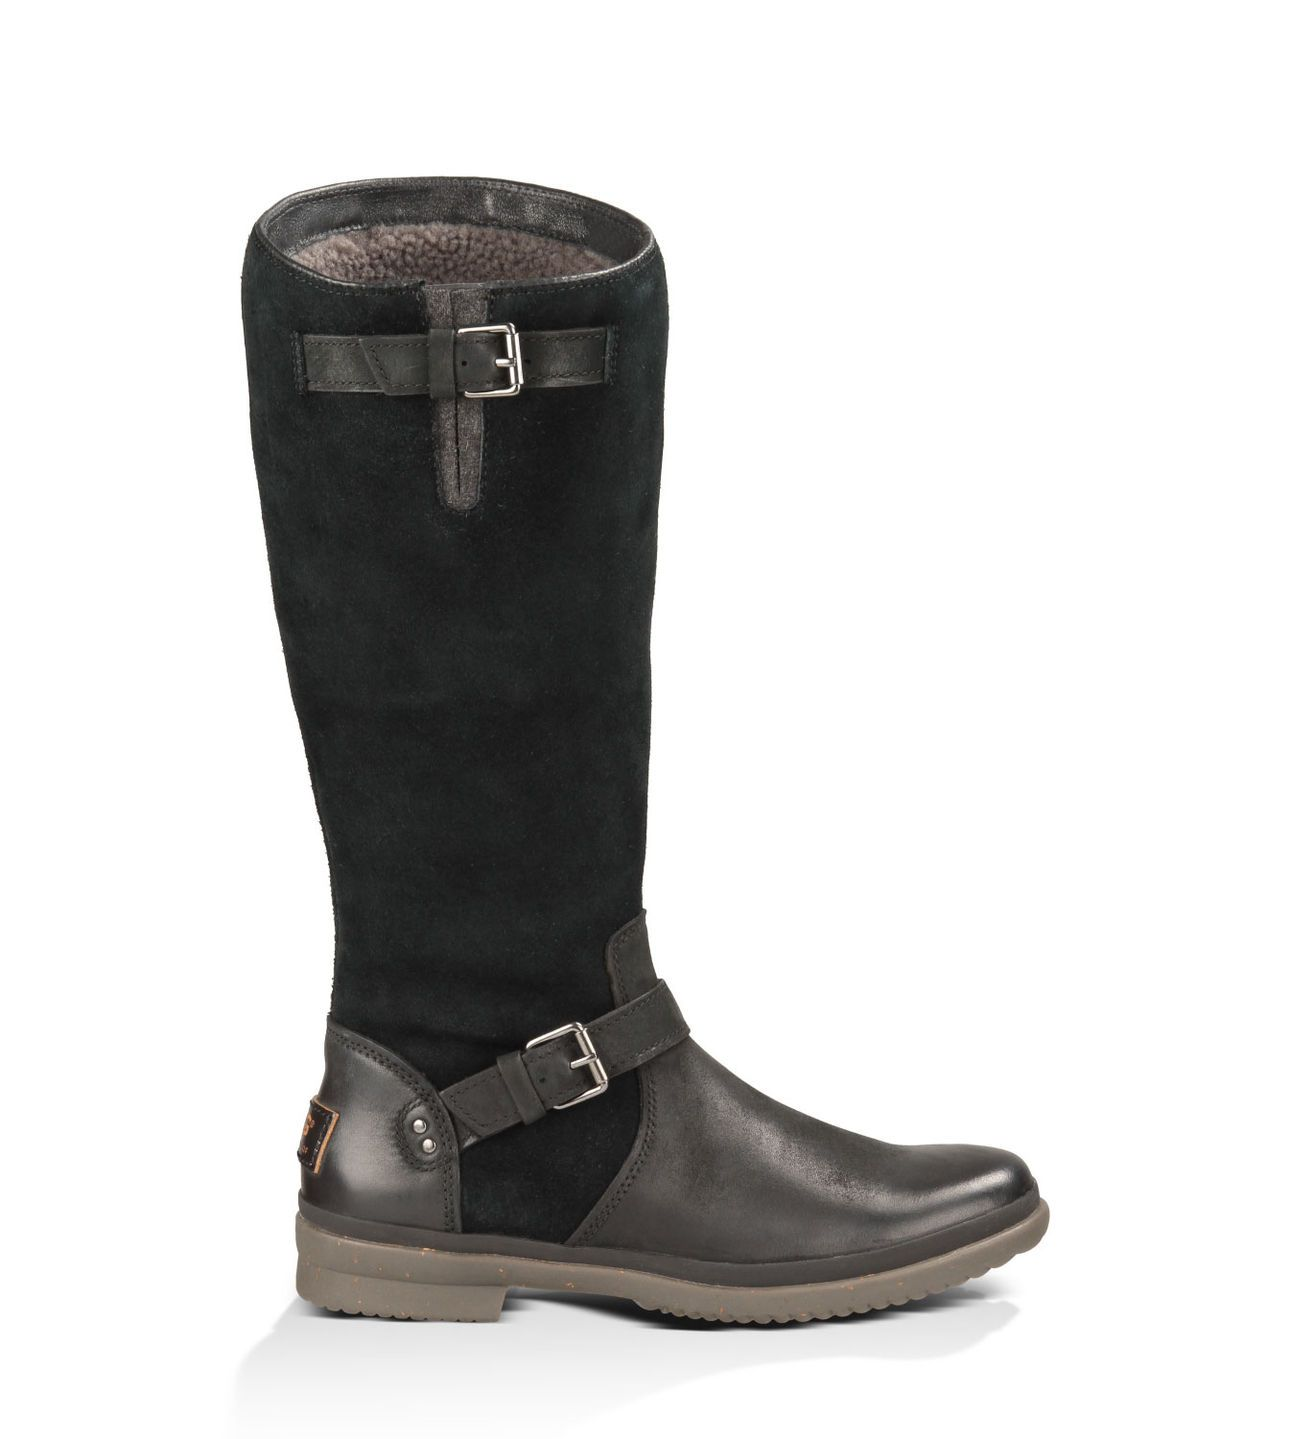 3bcc1e1ce8e The OFFICIAL UGG® store has the Thomsen for Women in the latest ...